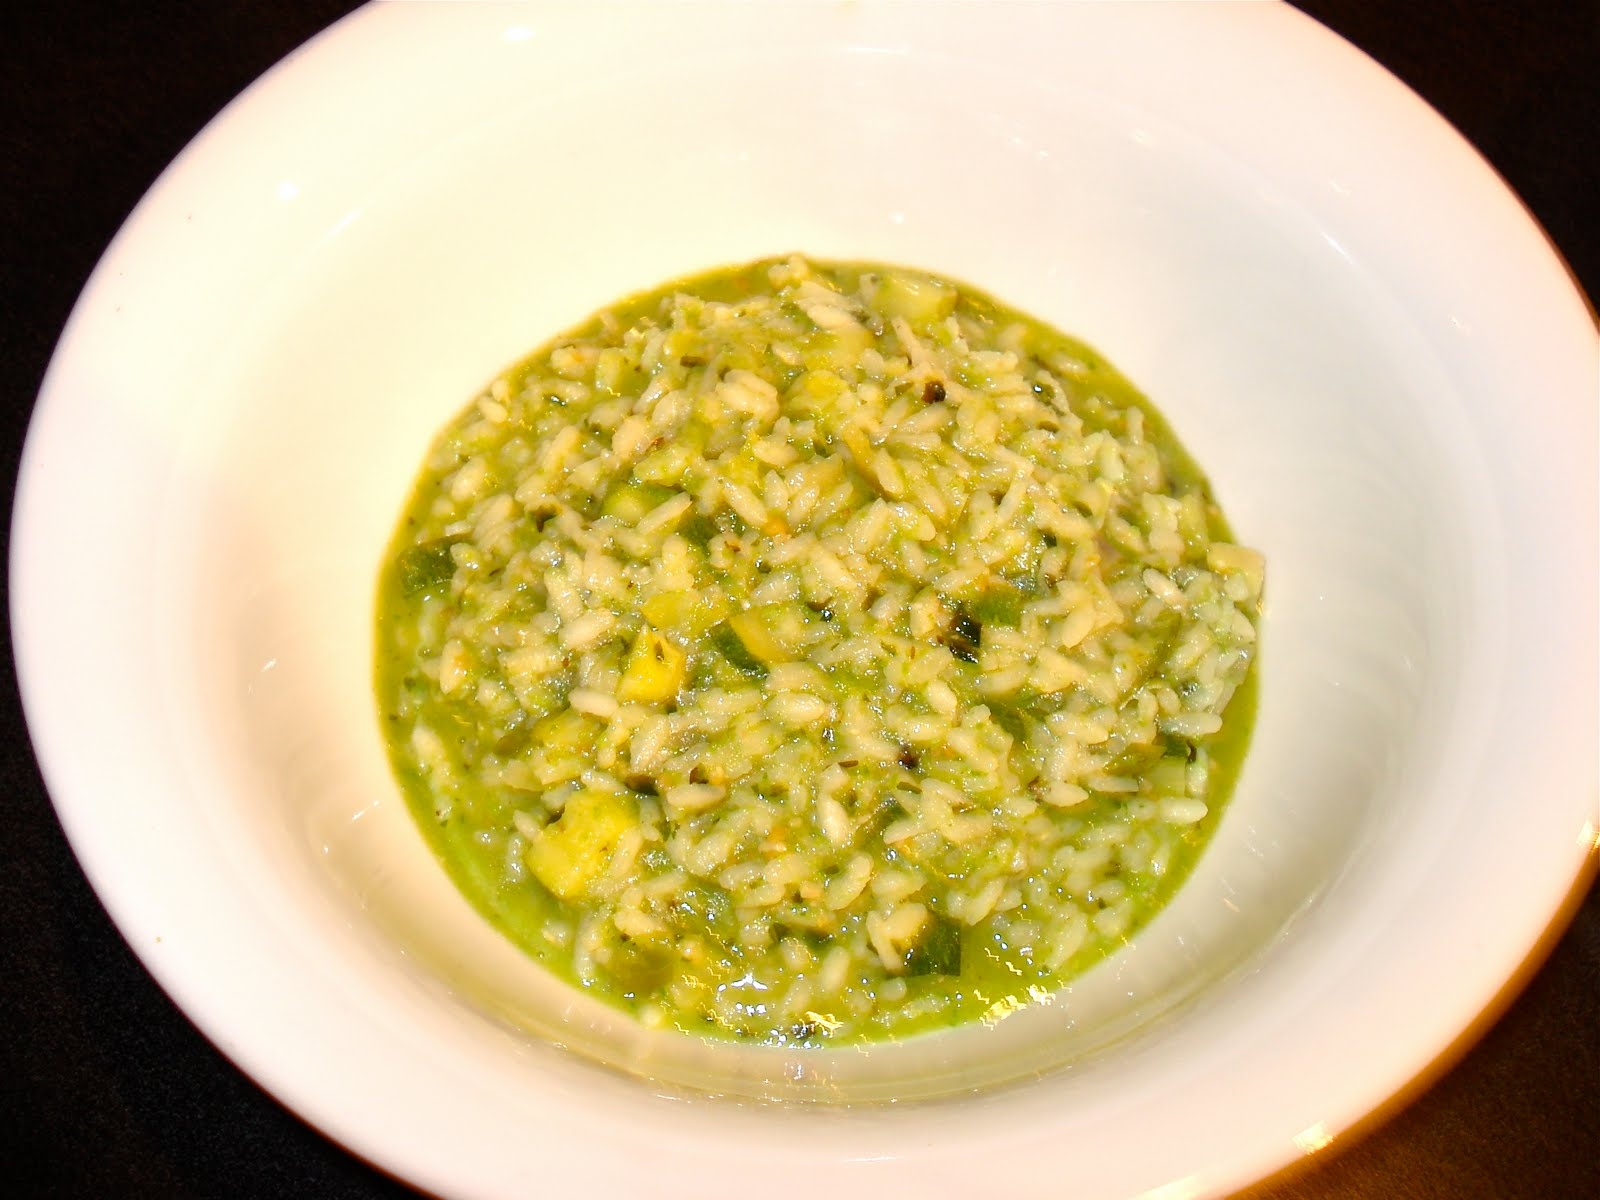 ... verde roasted salsa verde risotto verde baked risotto verde recipes